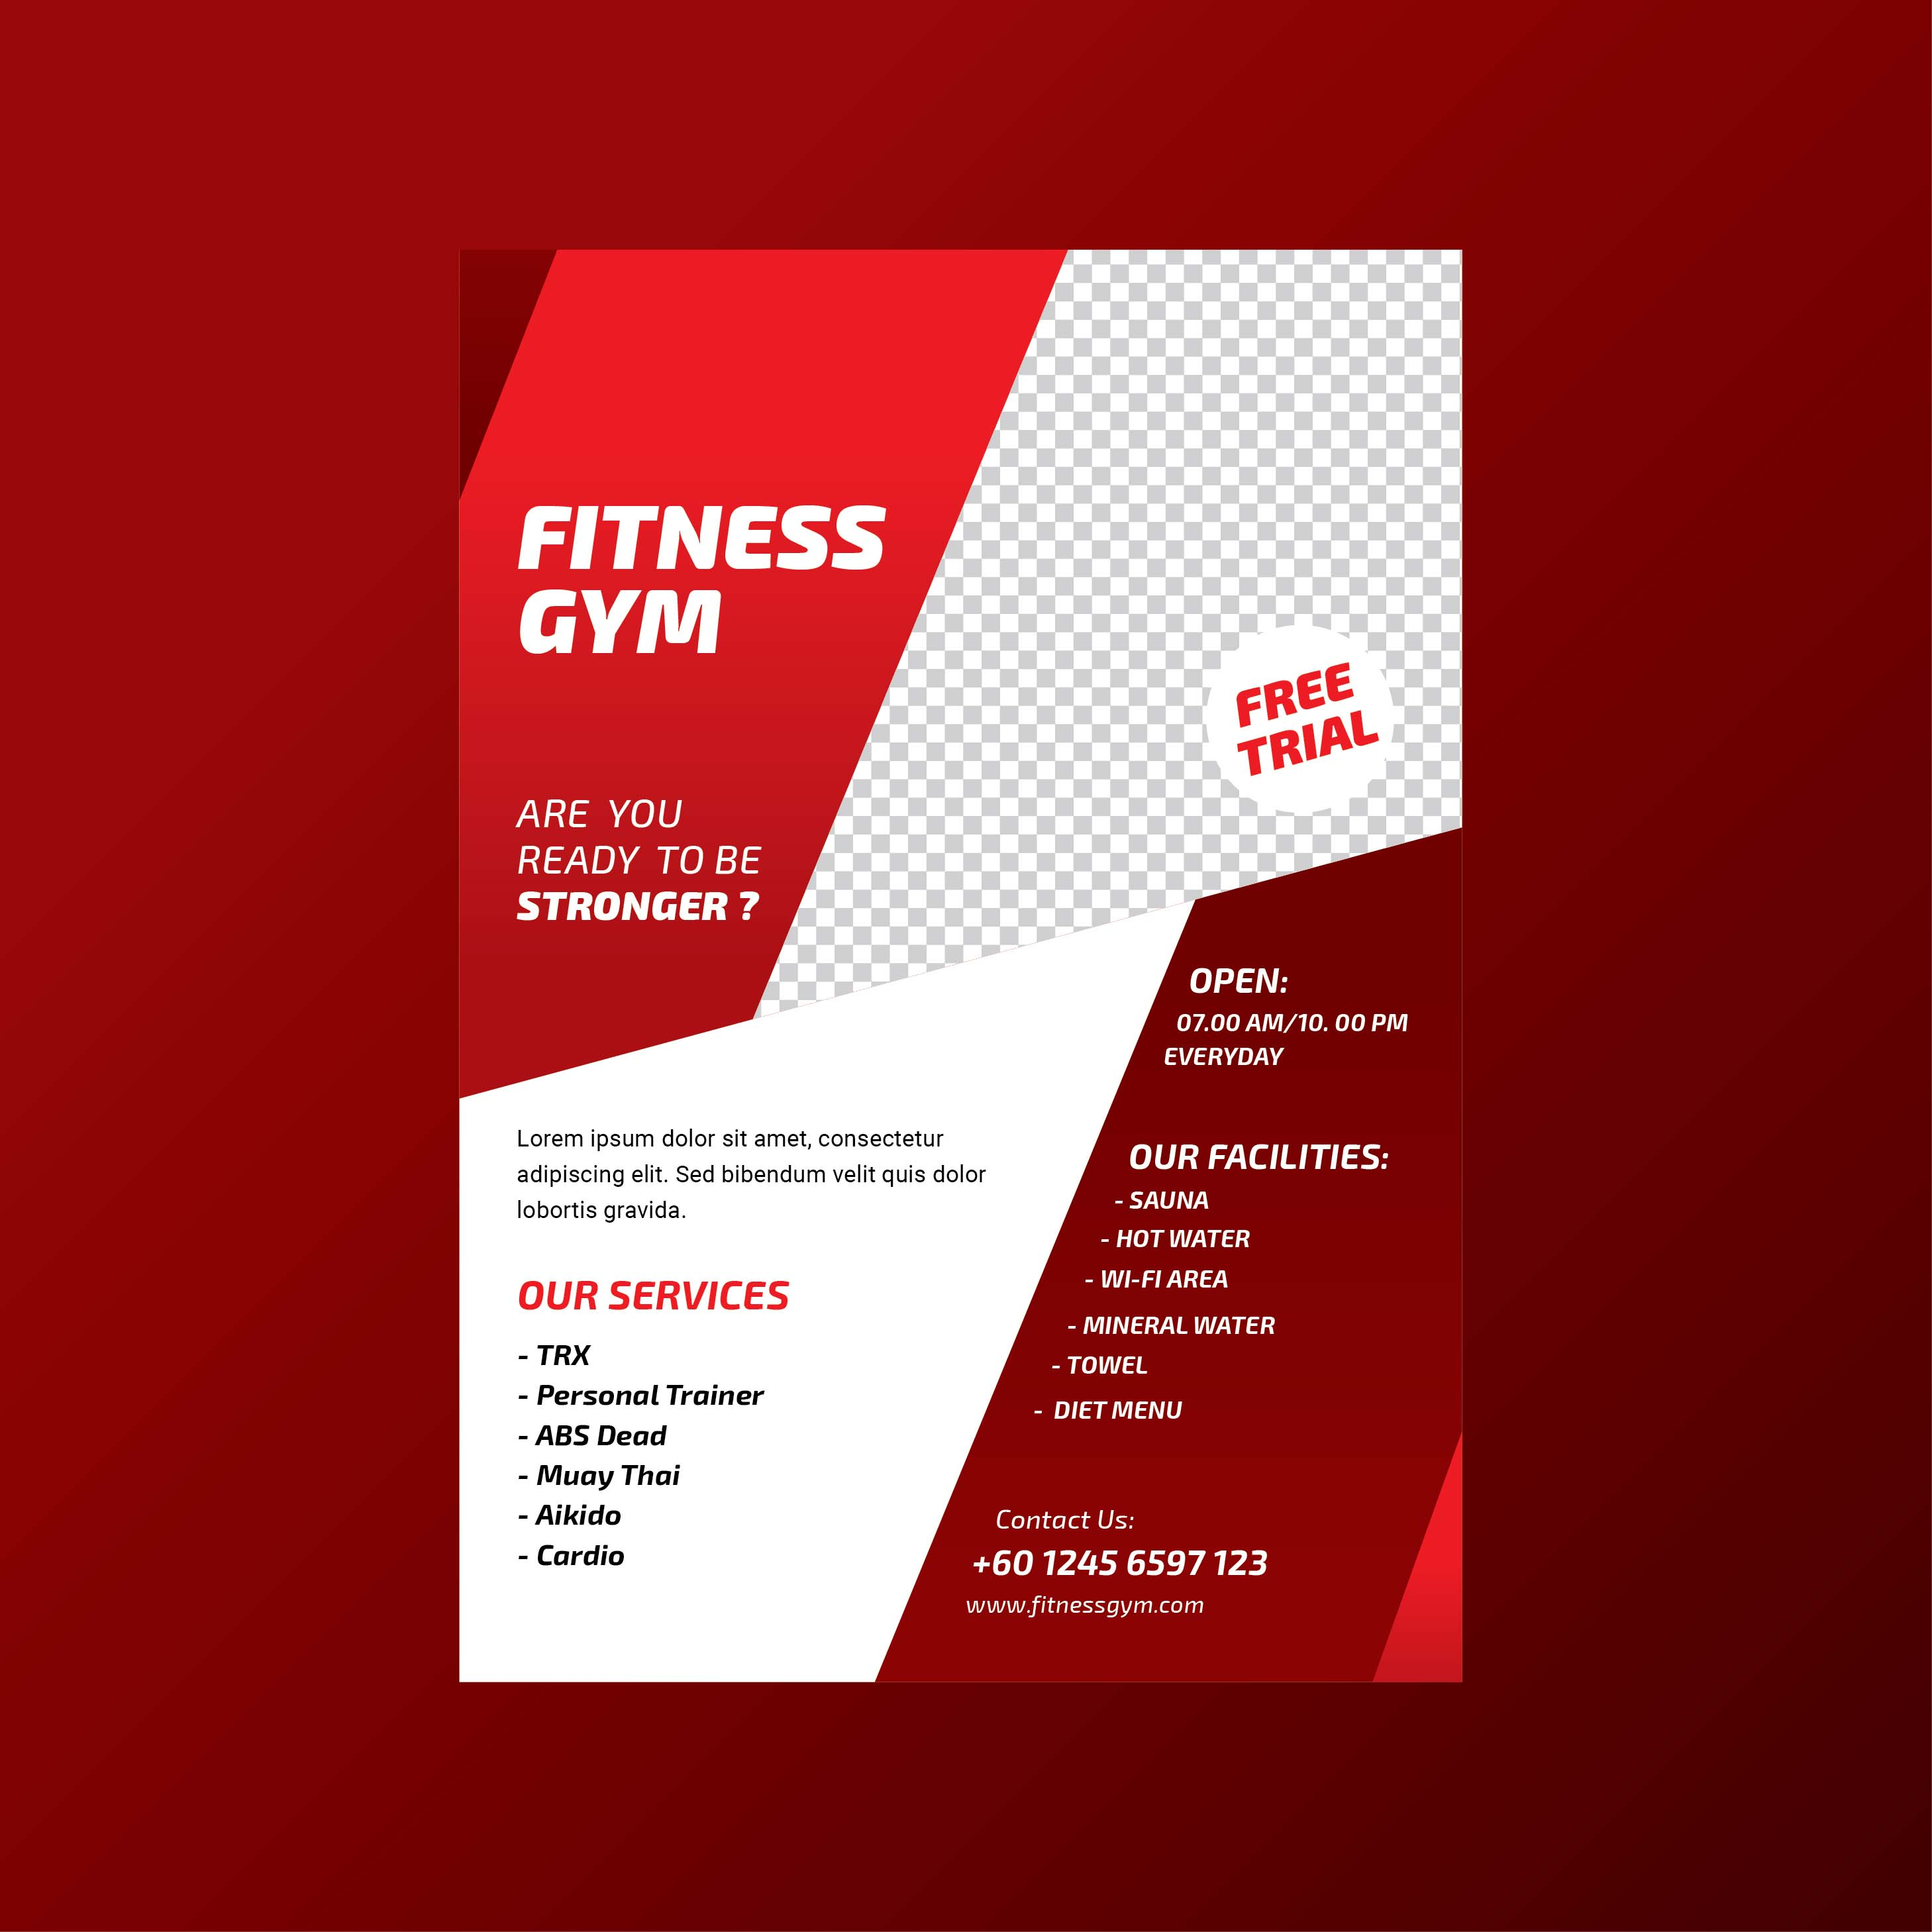 Fitness Gym Health Lifestyle Flyer Template Download Free Vector